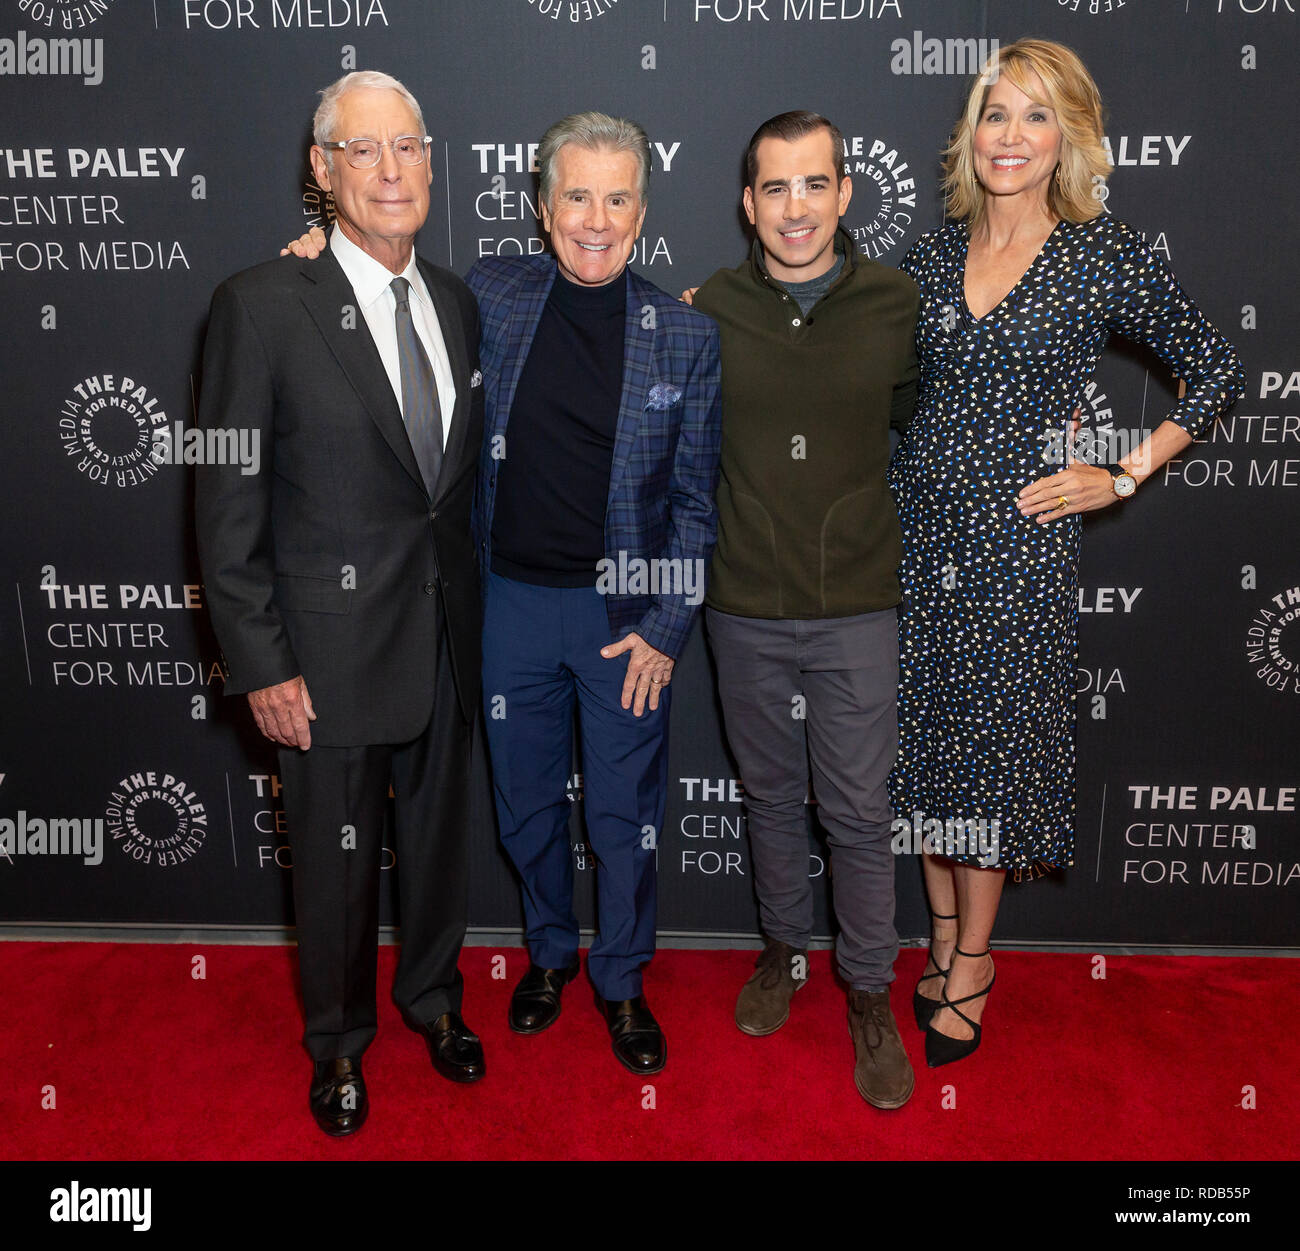 Callahan Walsh High Resolution Stock Photography And Images Alamy More ideas from meghan walsh. https www alamy com new york united states 16th jan 2019 henry schlieff john walsh callahan walsh paula zahn attend in pursuit with john walsh screening conversation at the paley center for media credit lev radinpacific pressalamy live news image231970866 html